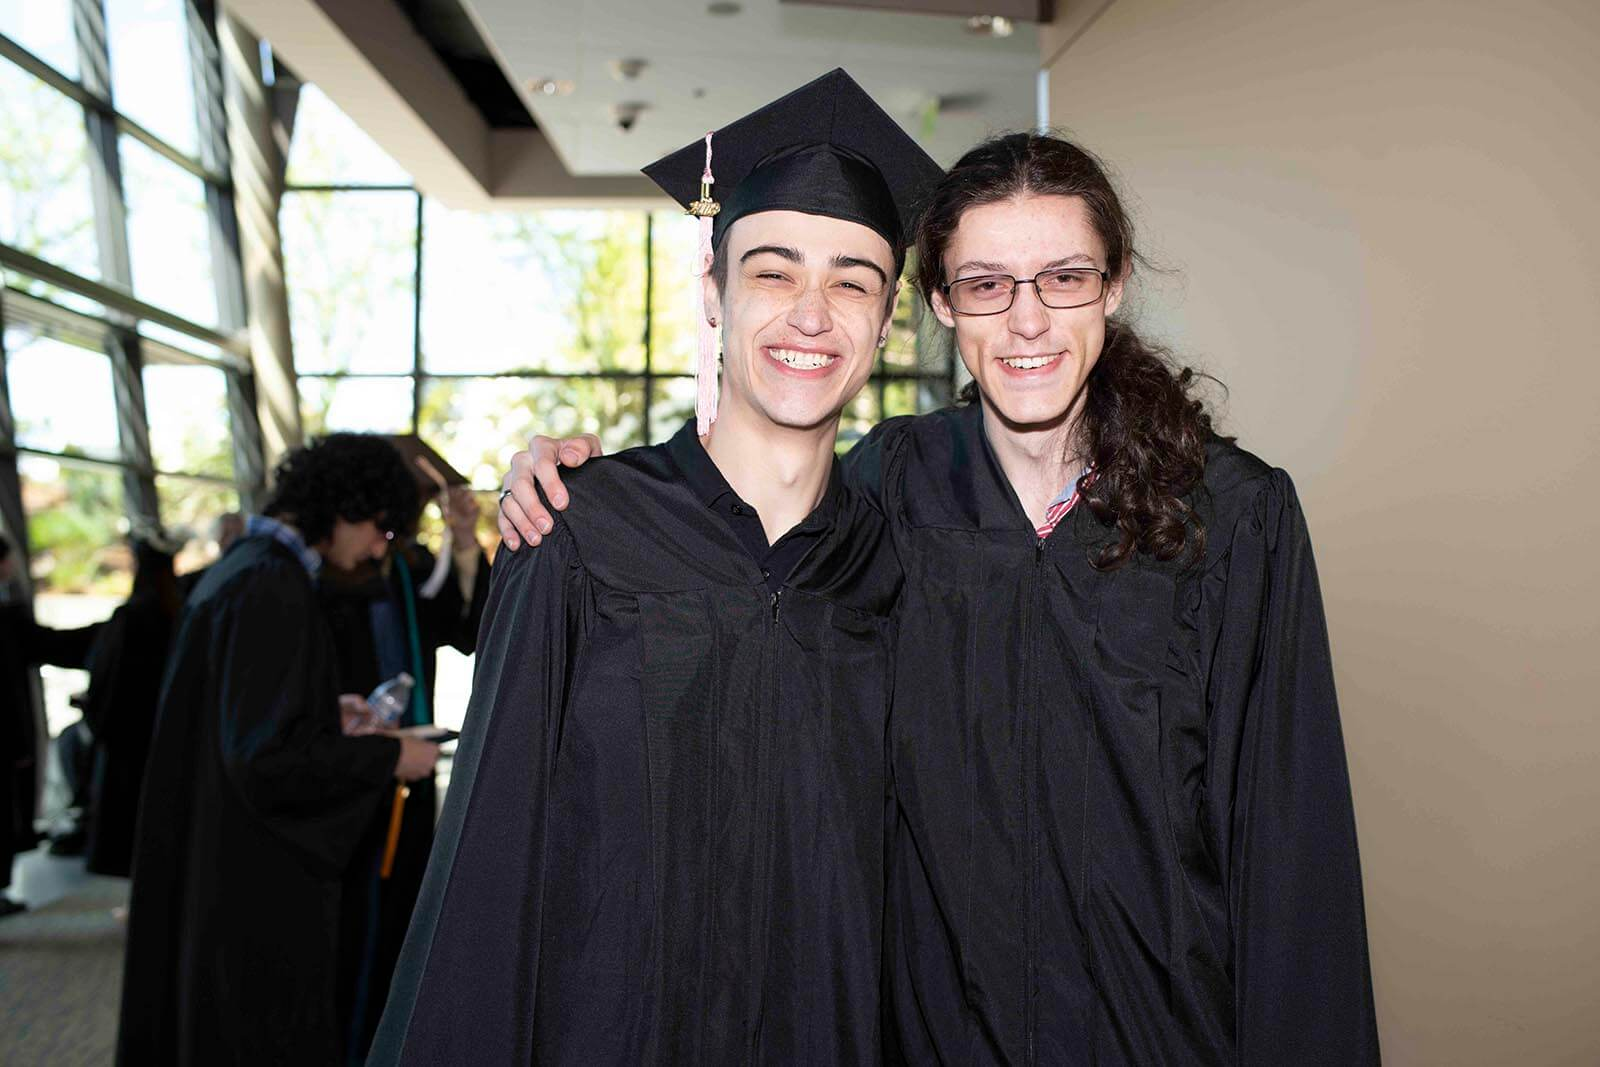 Two students in graduation garb smile for a photo in a convention center hallway.